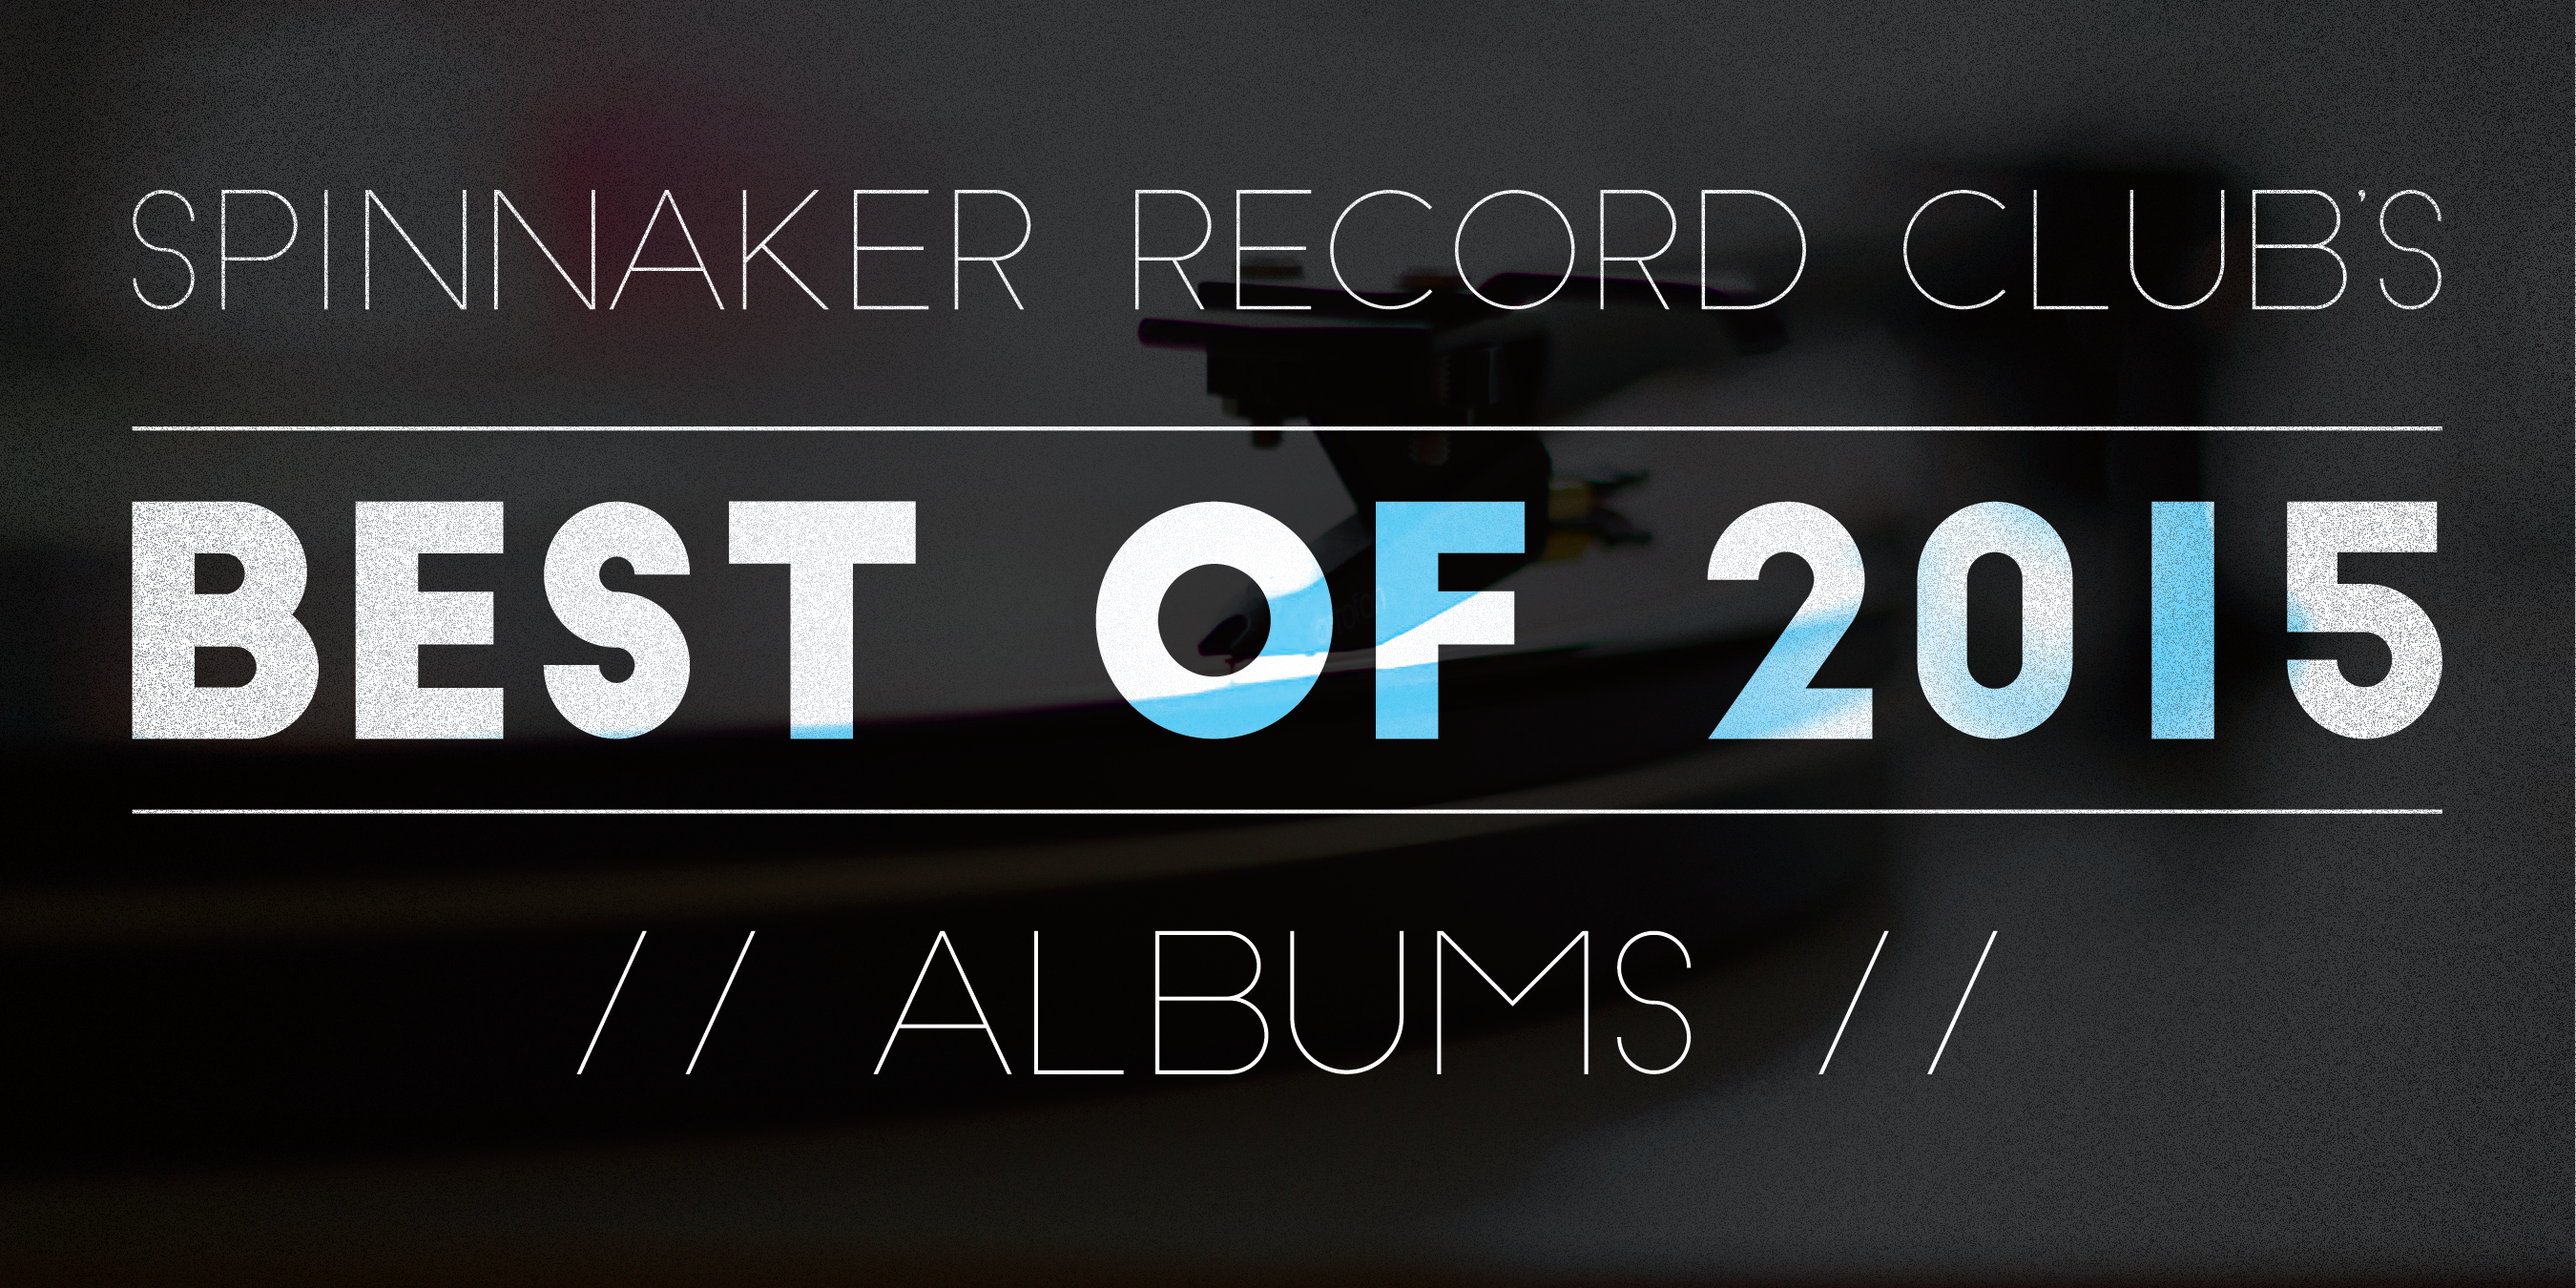 Spinnaker Record Club's Best of 2015: Albums